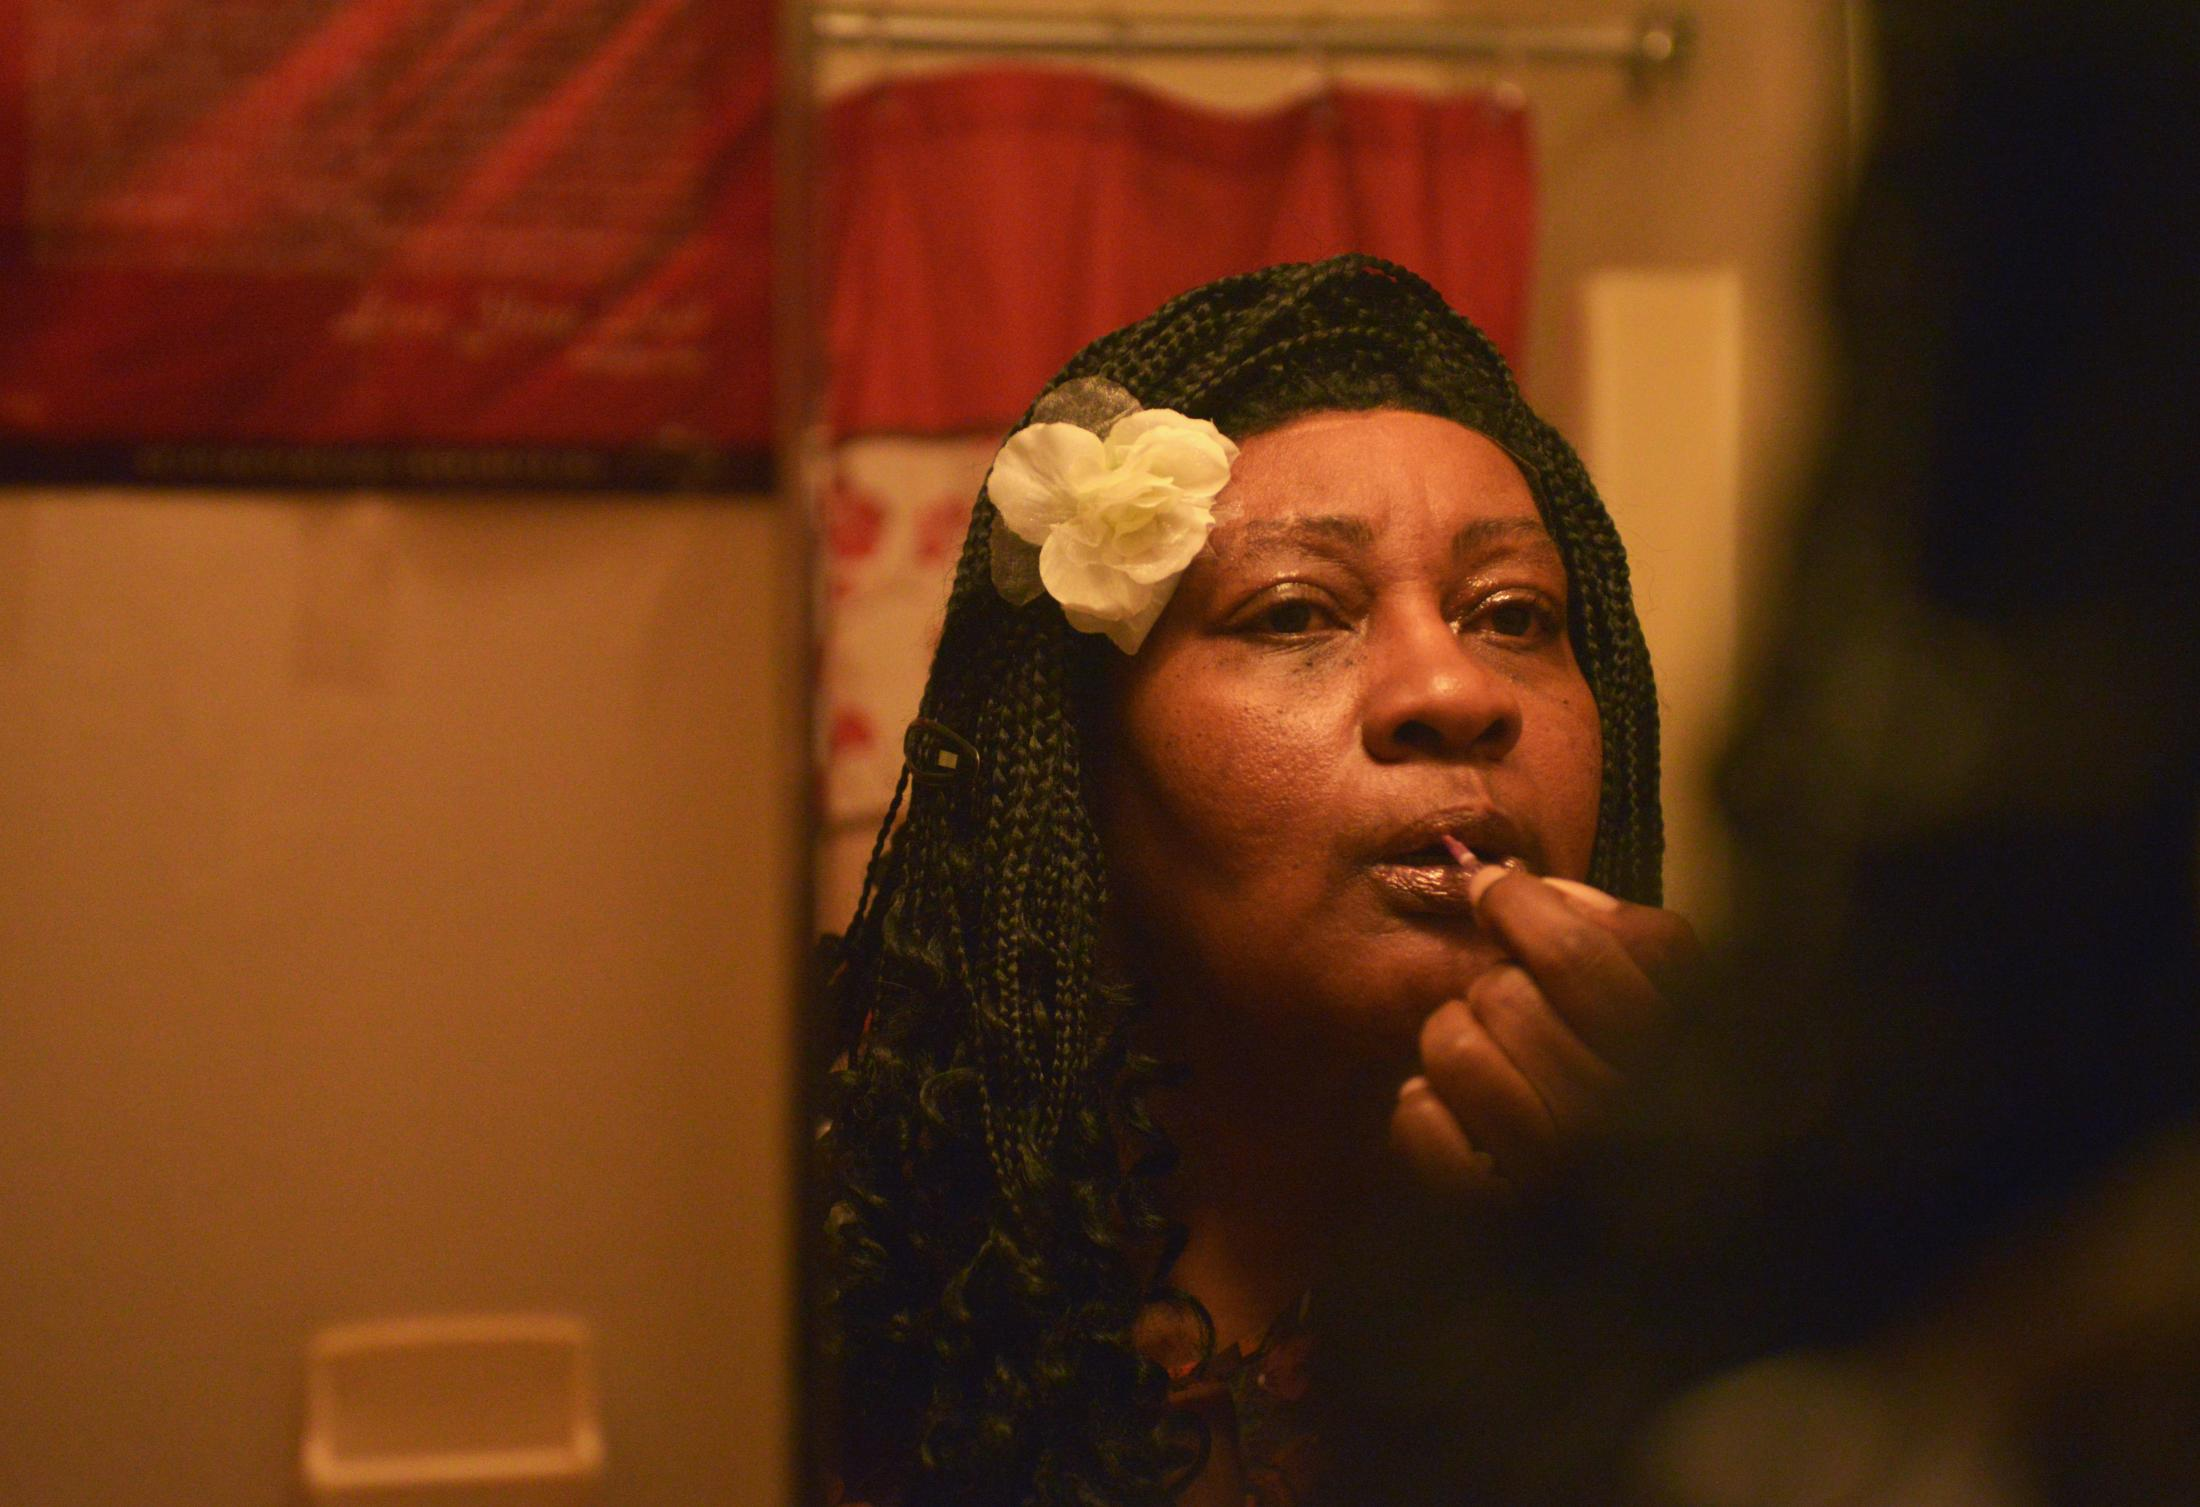 """Donna Fullington applies lipstick as she prepares for the Night to Shine dance Friday, Feb. 7, 2020, at her home in Fayette. Fullington has been looking forward to the dance all year. """"I have never been so nervous and excited as I am right now,"""" Fullington said."""